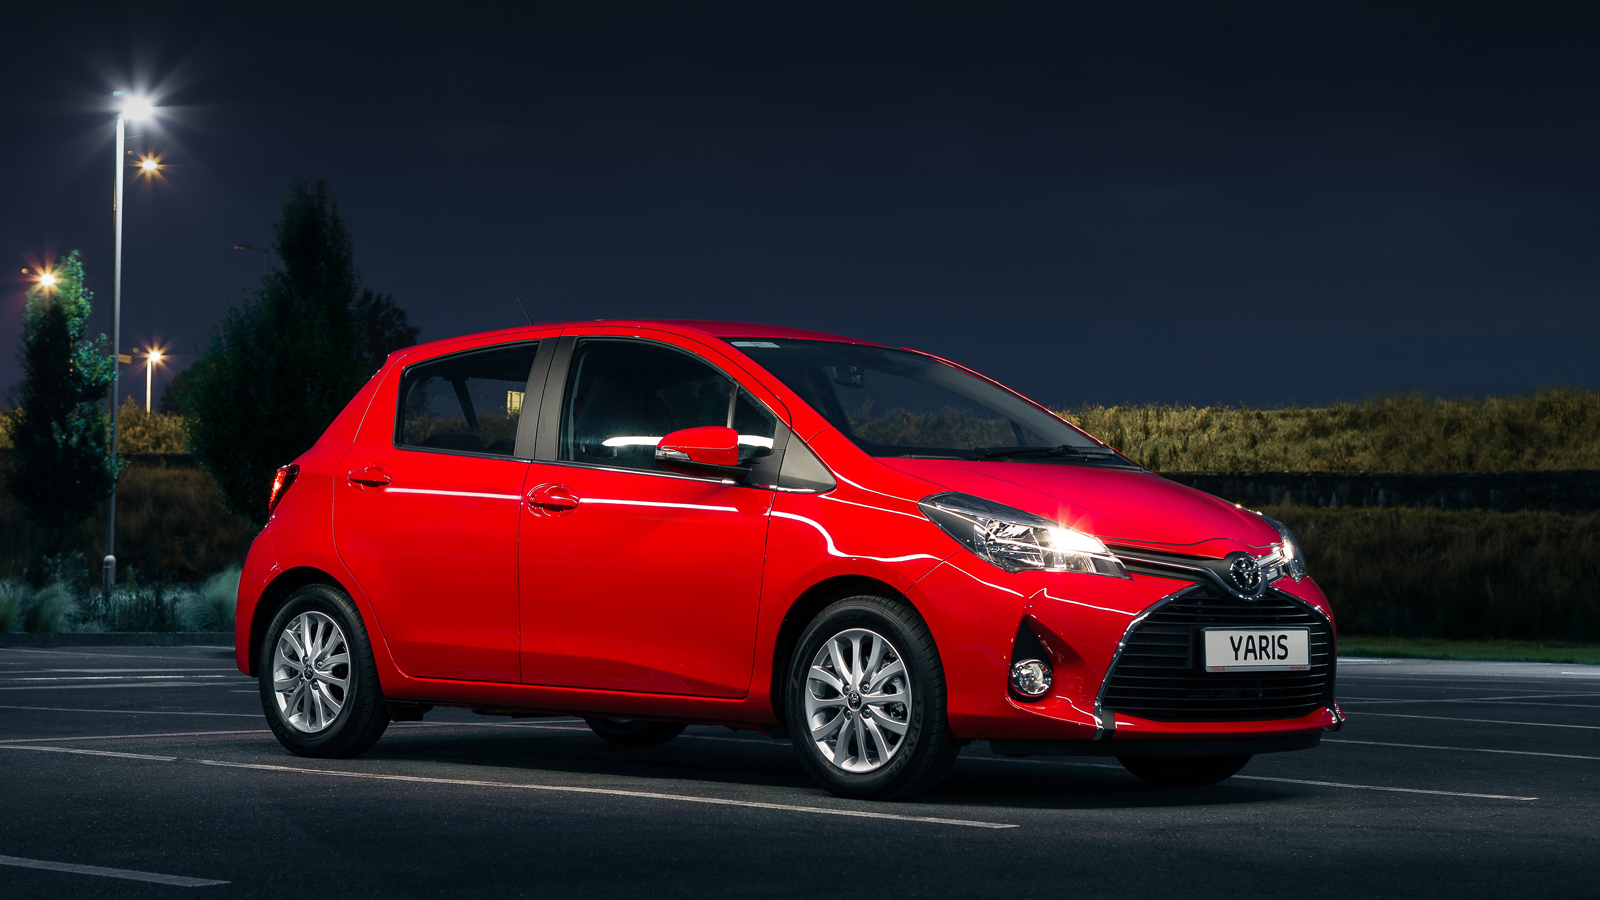 New-look Yaris